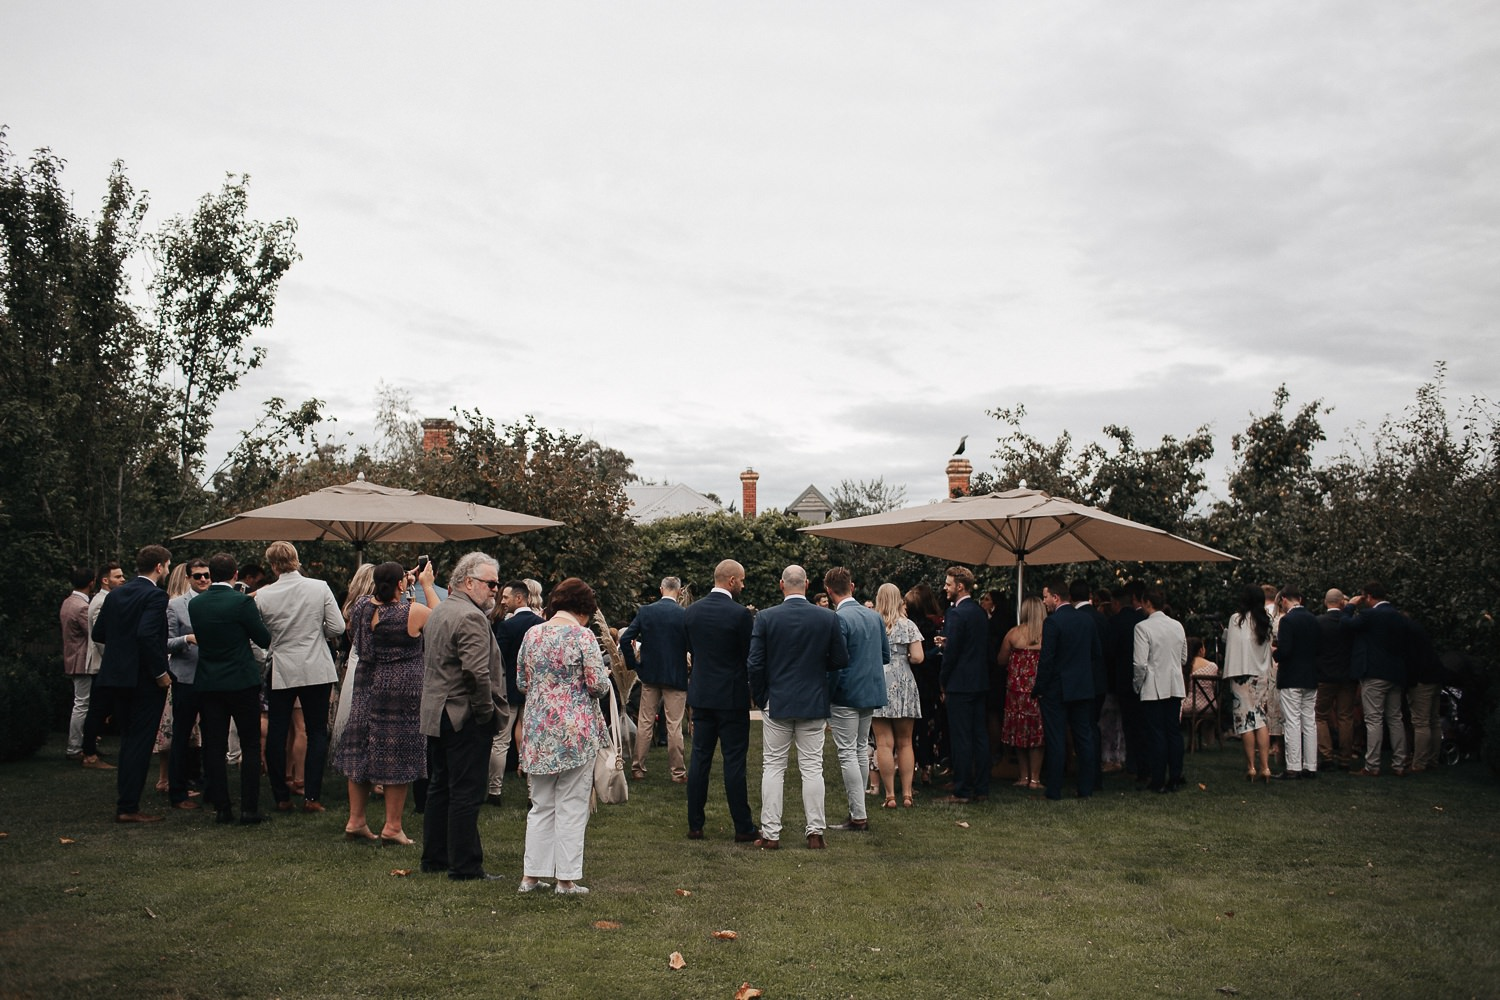 private-property-wedding-relaxed-melbourne-fun-documentary-photography_0067.jpg